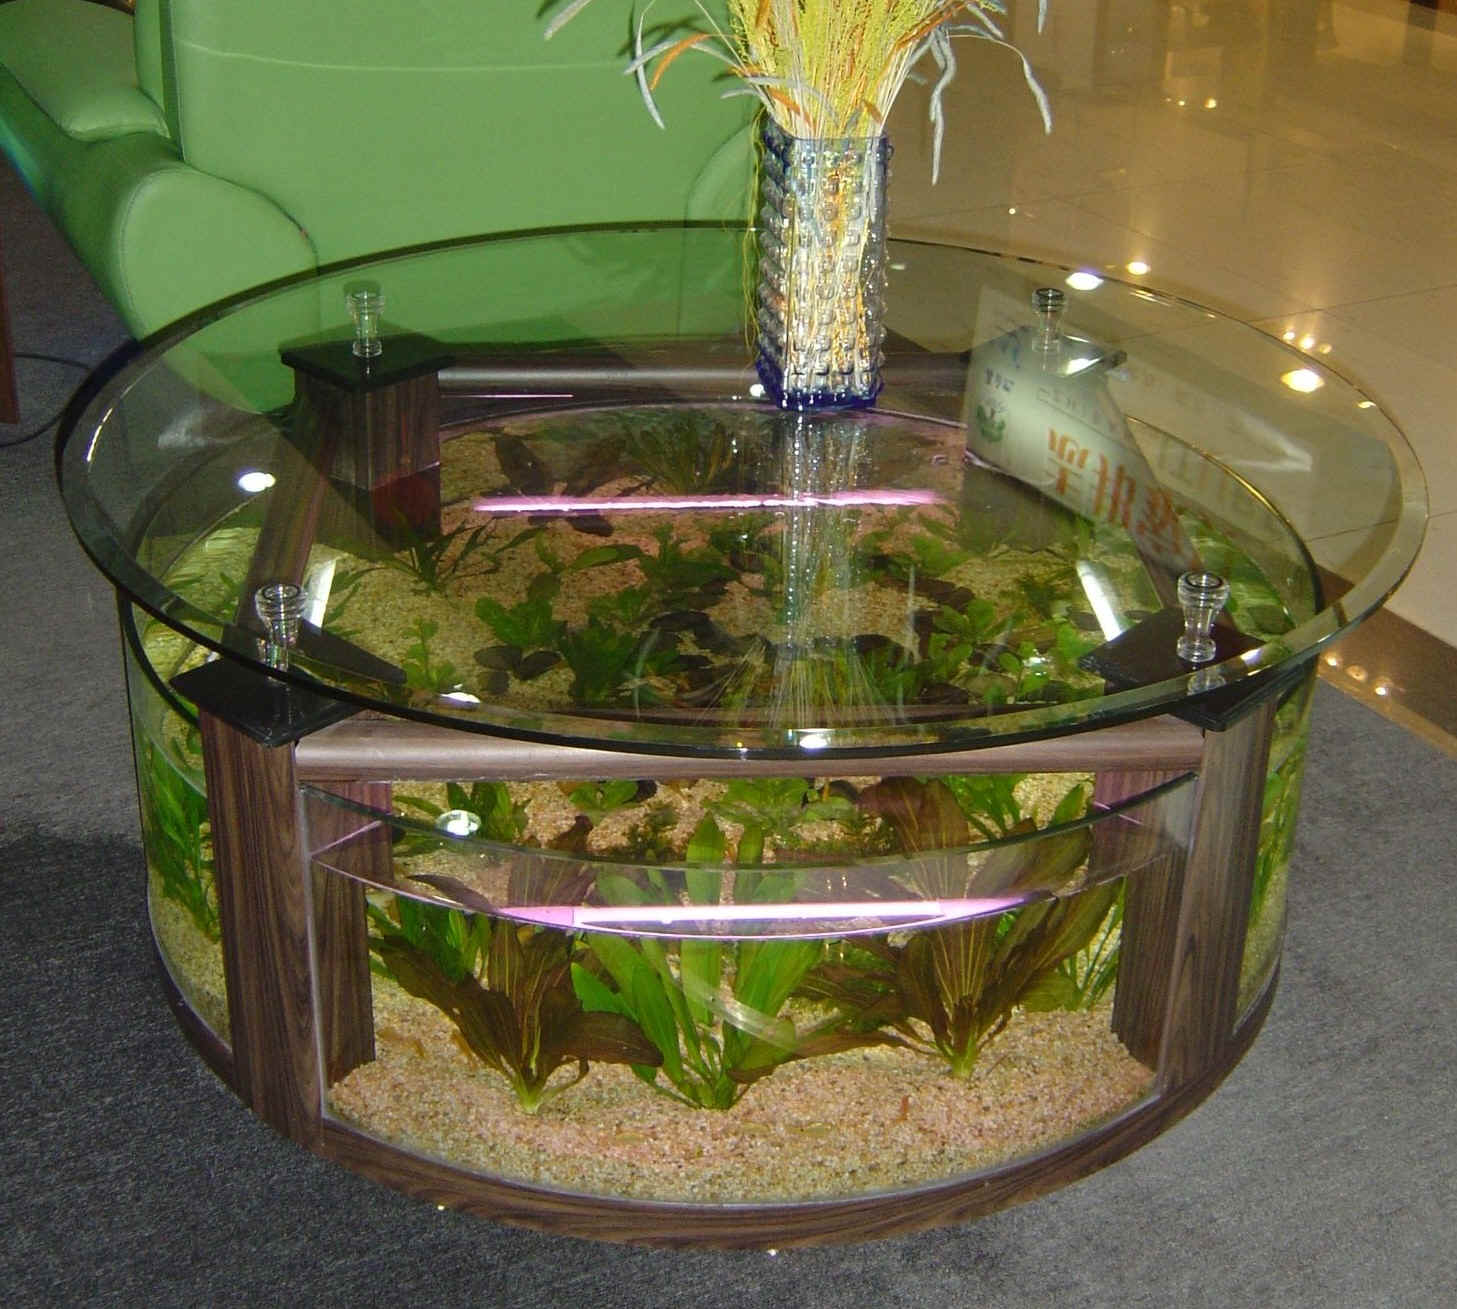 Fish aquarium for sale in karachi - Half Circle Desks